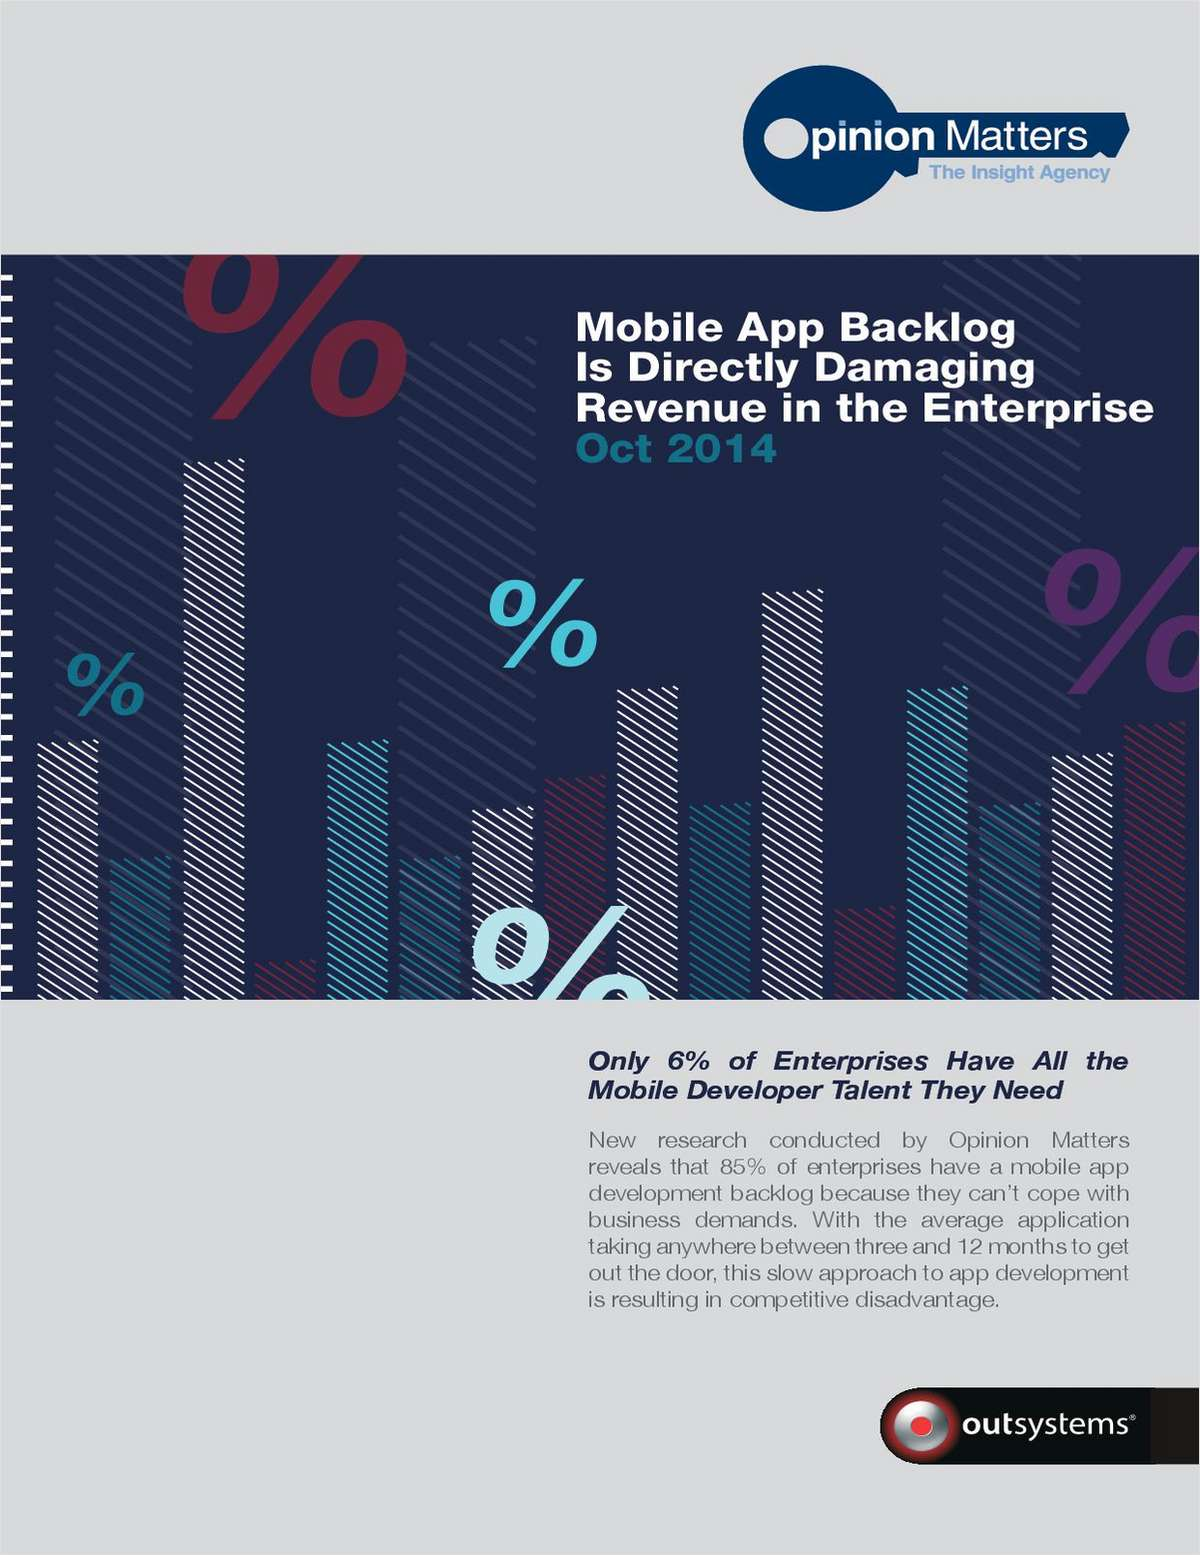 Mobile App Backlog is Directly Damaging Revenue in the Enterprise